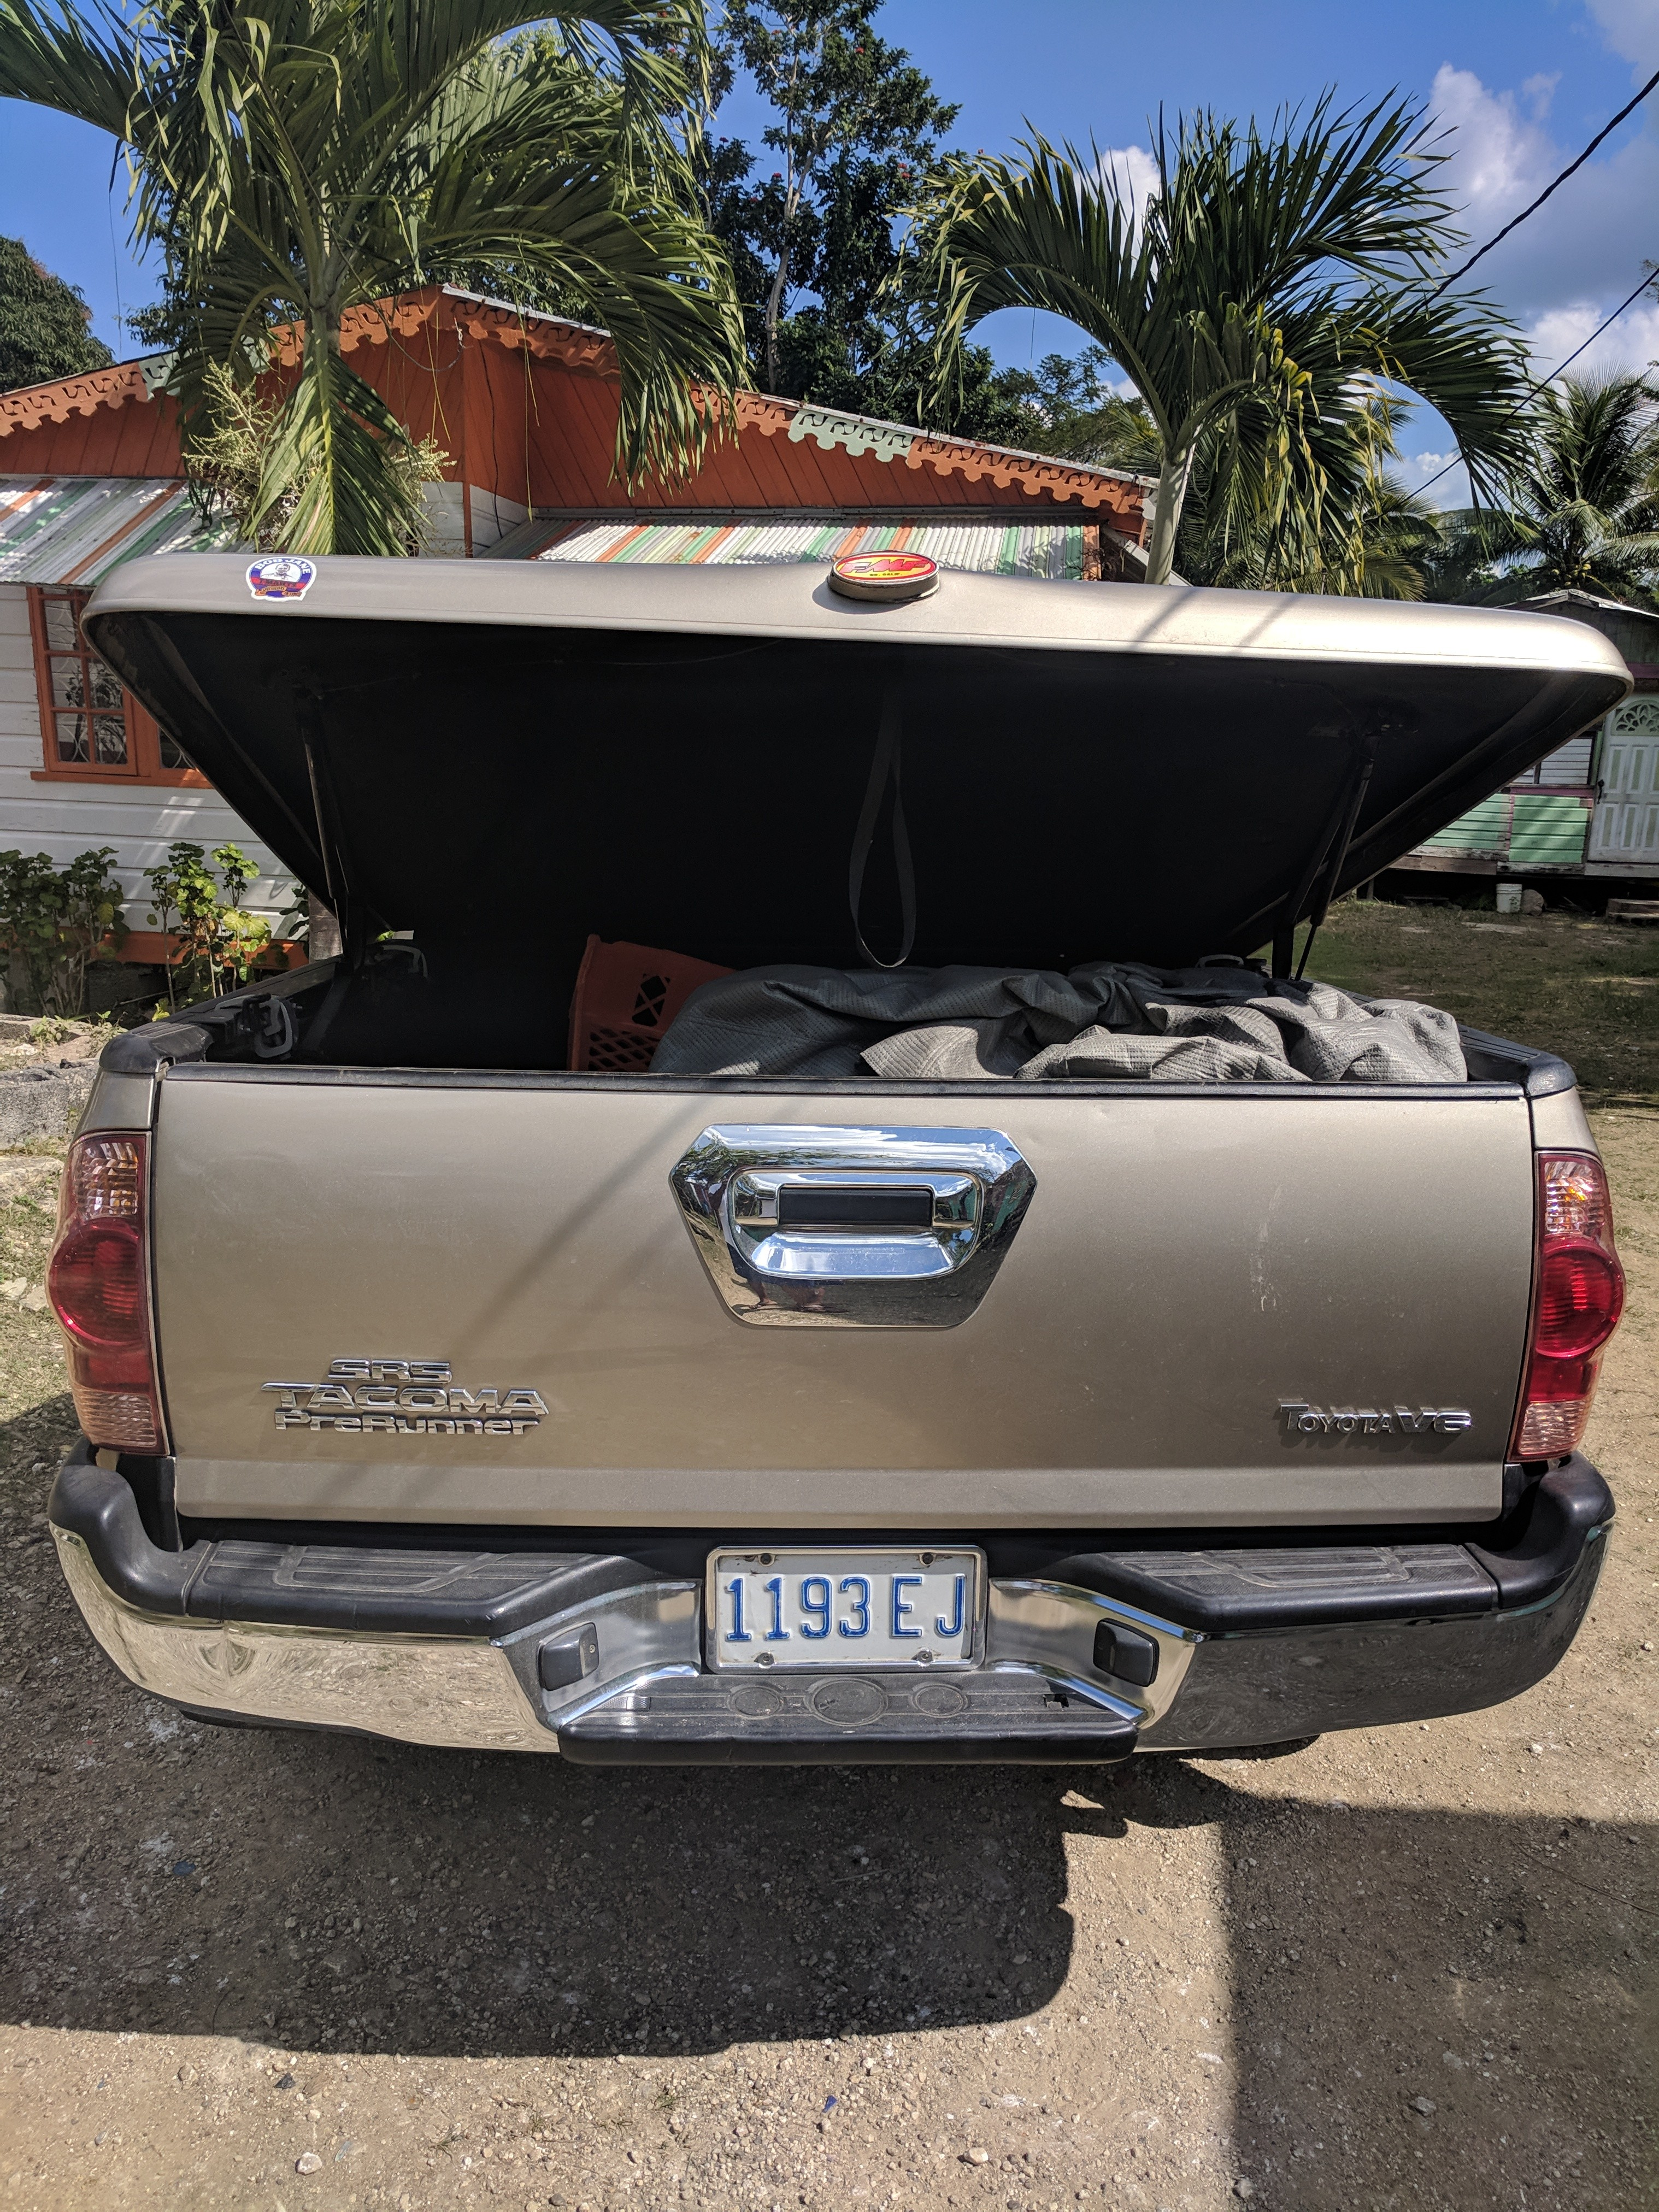 2007 Toyota Tacoma Pick Up For Sale